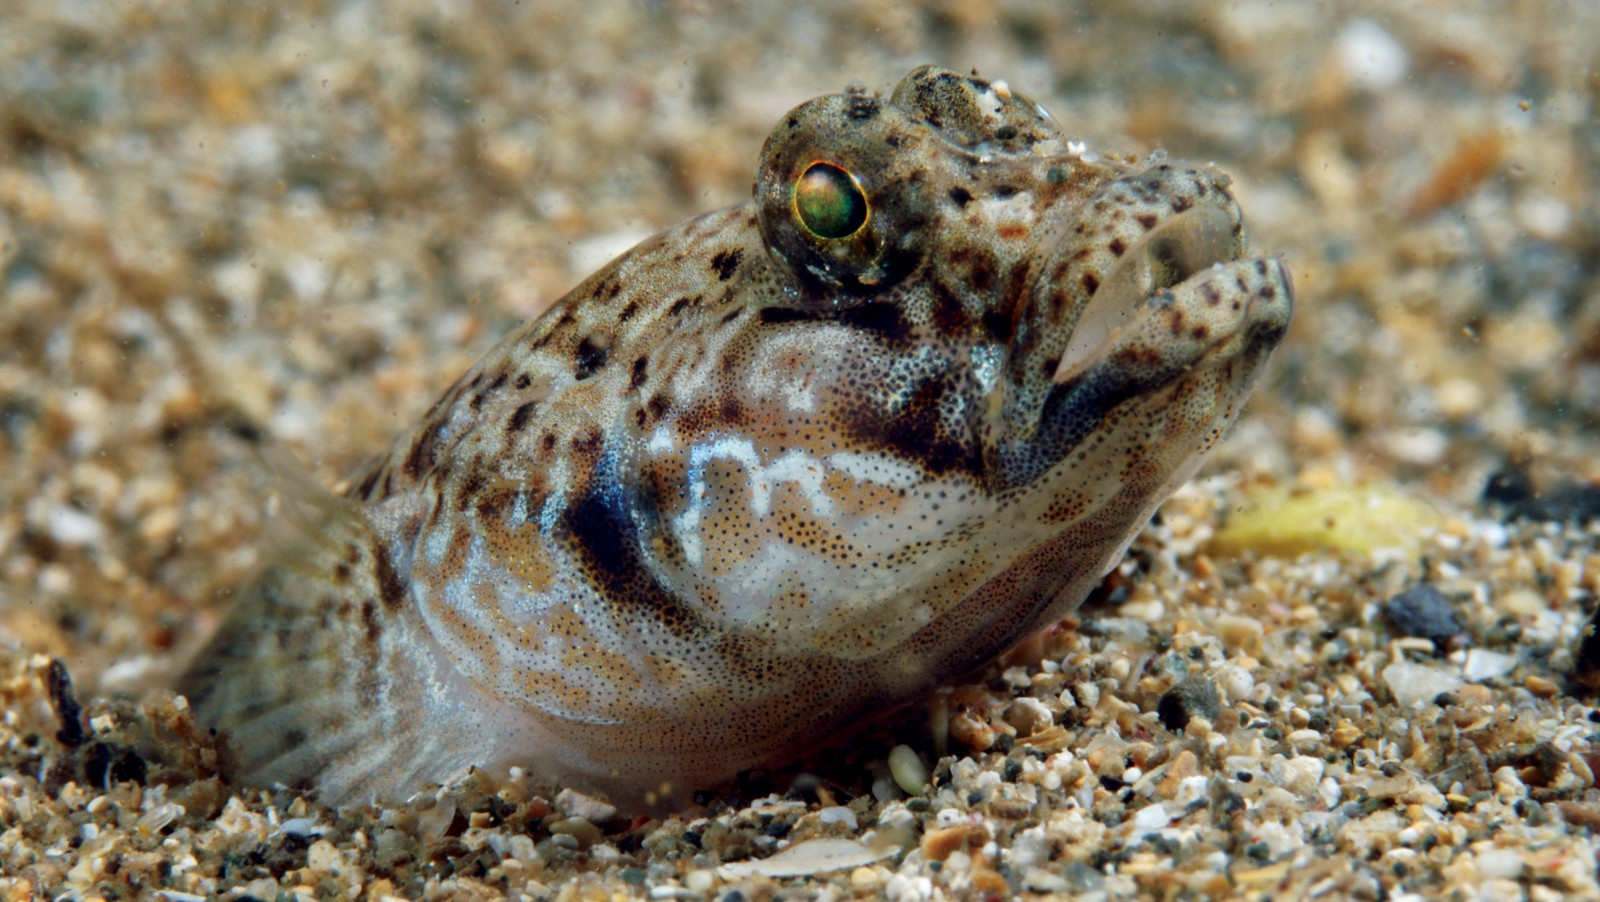 Inconspicuousness improves longevity and also one's chances of capturing a feed. The exquisite goby (seen here), a non-native species that has established in New Zealand, is well-camouflaged against the sand it hides in, while a cling fish wears the same mossy hues as the old shell in which it nestles.